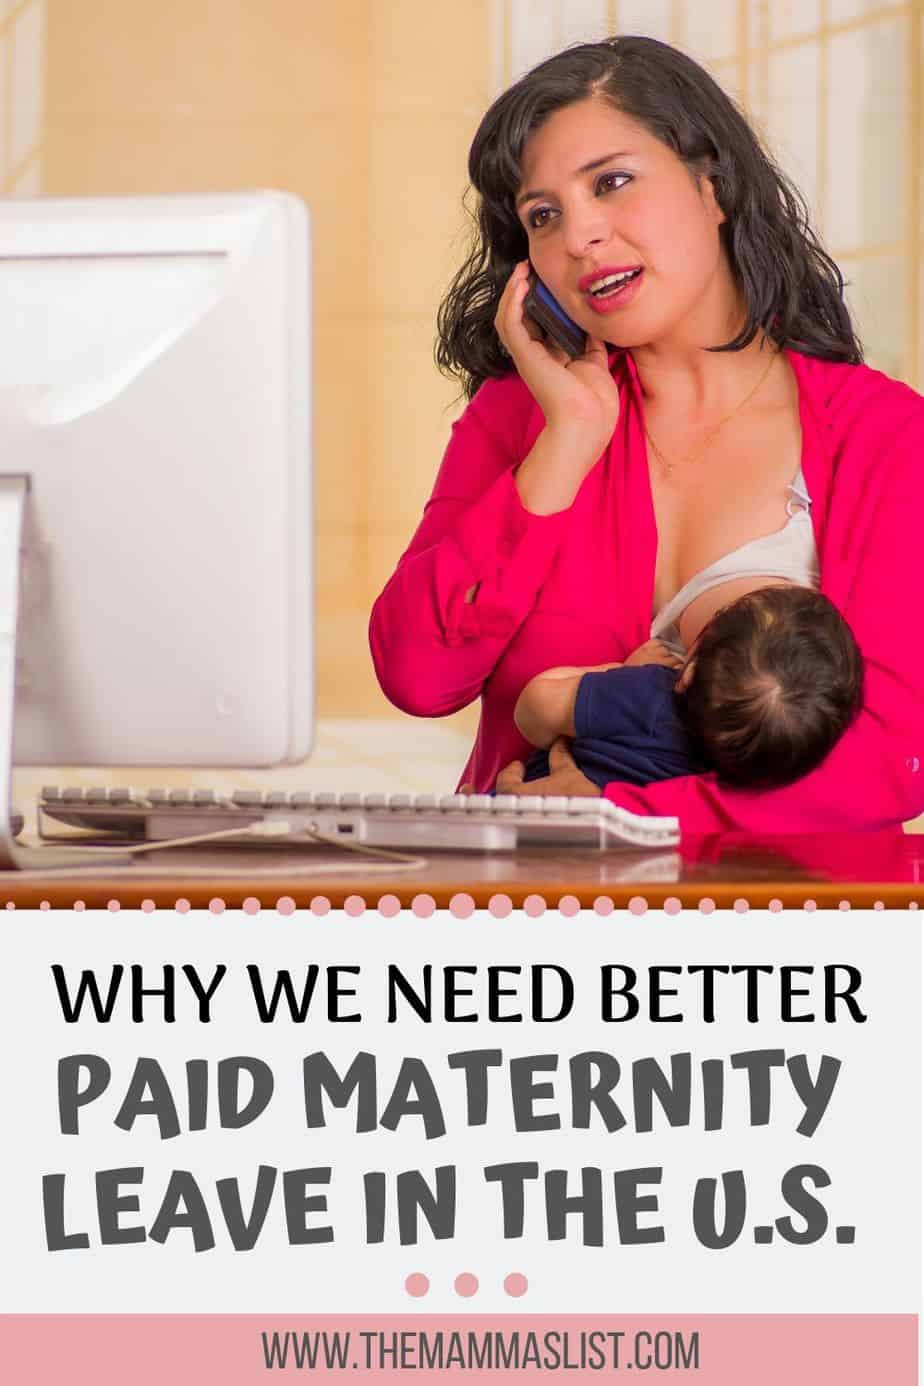 Paid maternity leave in the U.S. is unacceptable. Moms need more time to recover from childbirth, bond with their babies, and deal with the changes in their lives. Parental leave is mandated in almost every other developed nation in the world. The U.S. has a long way to go in equalizing the workforce, and it can start with paid leave